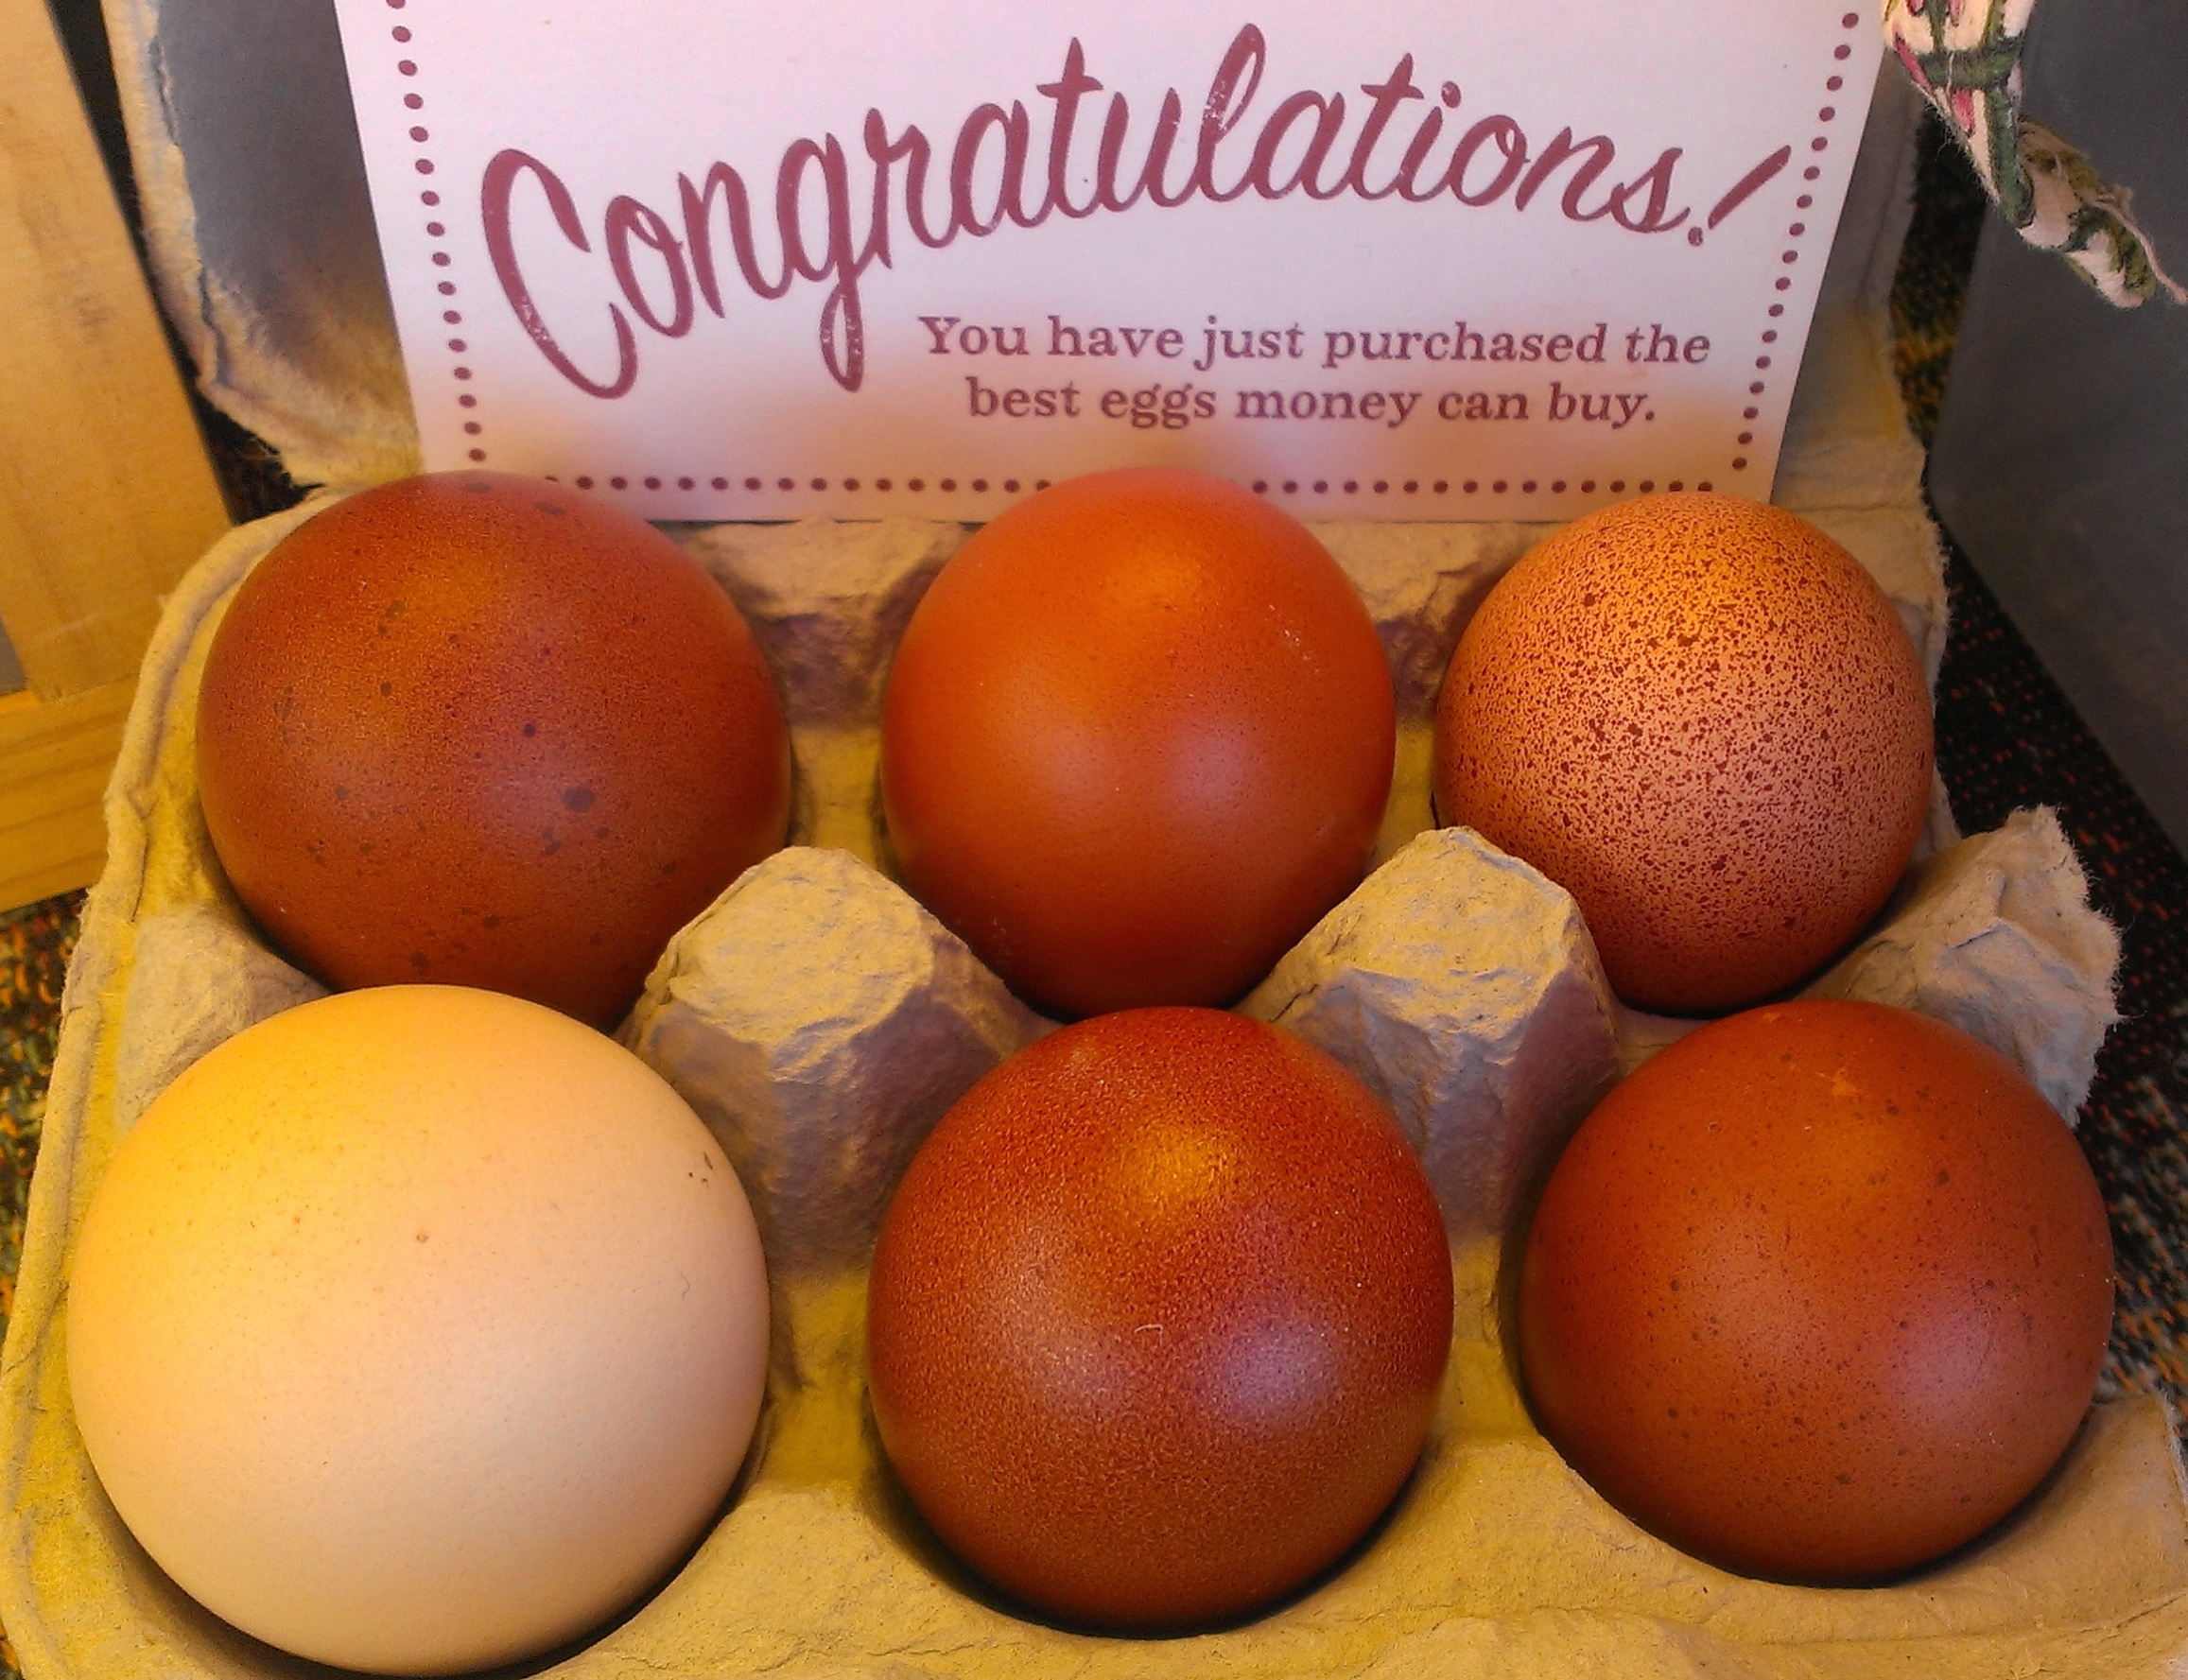 Our eggs are Awa certified - guaranteeing family farm - highest animal welfare standards